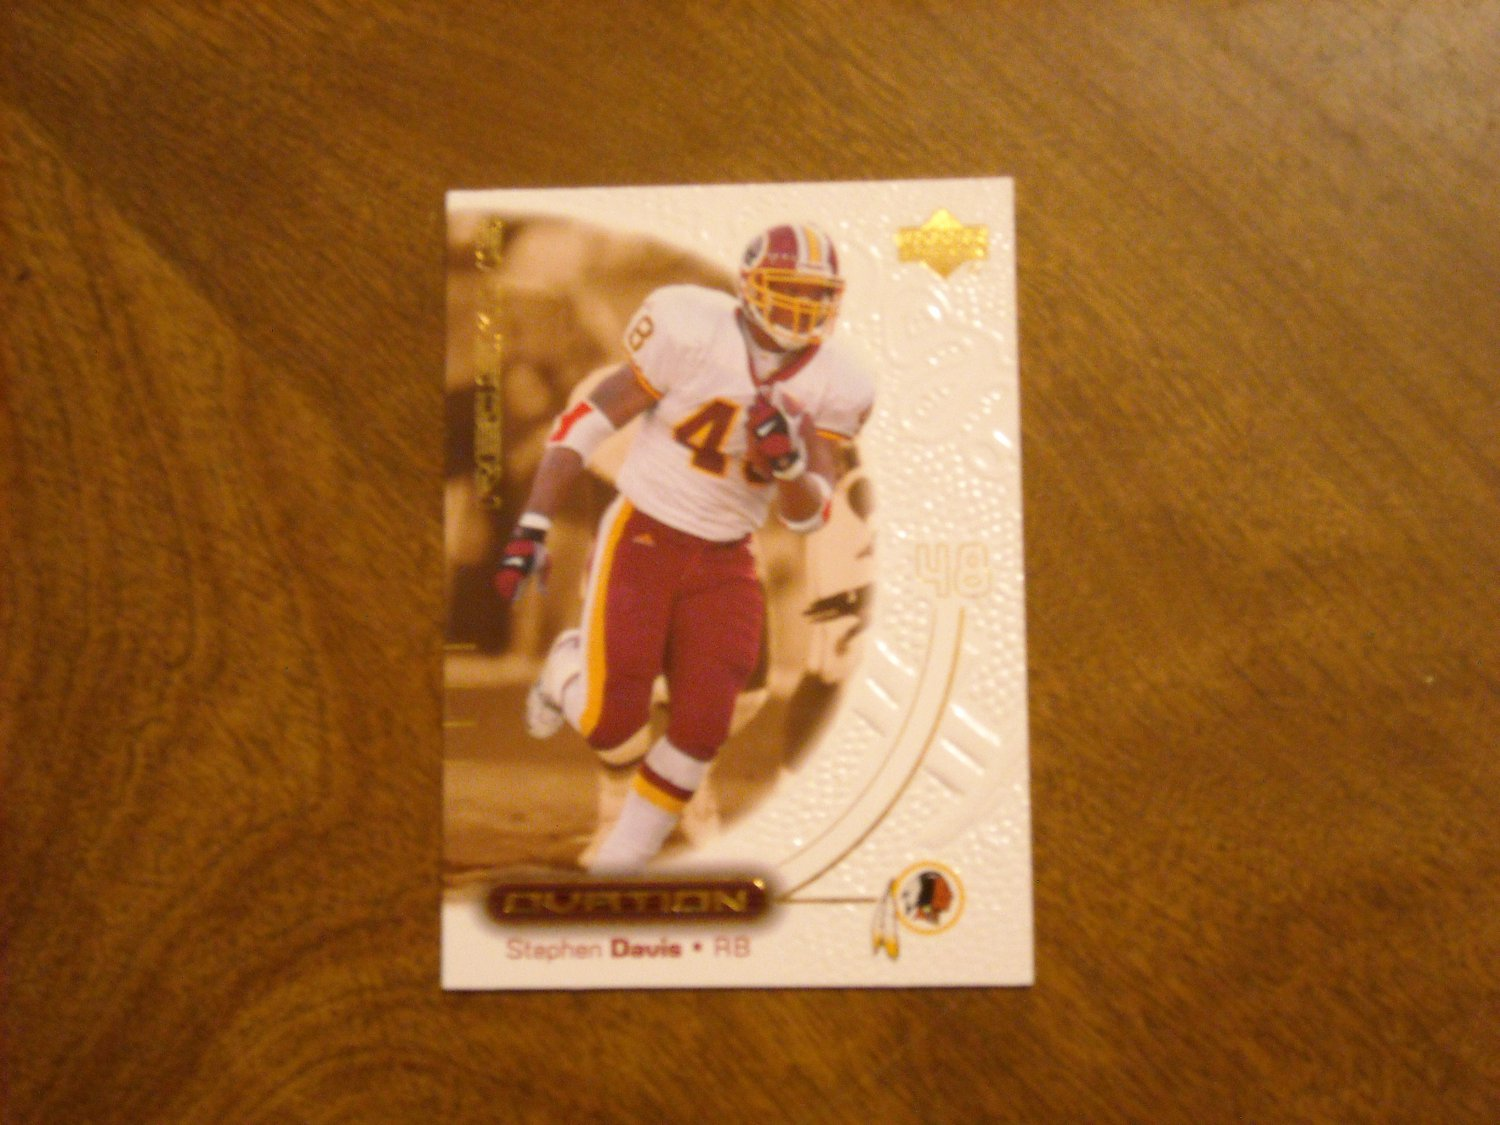 Stephen Davis Washington Redskins RB Card No. 60 - 2000 Upper Deck Ovation Football Card